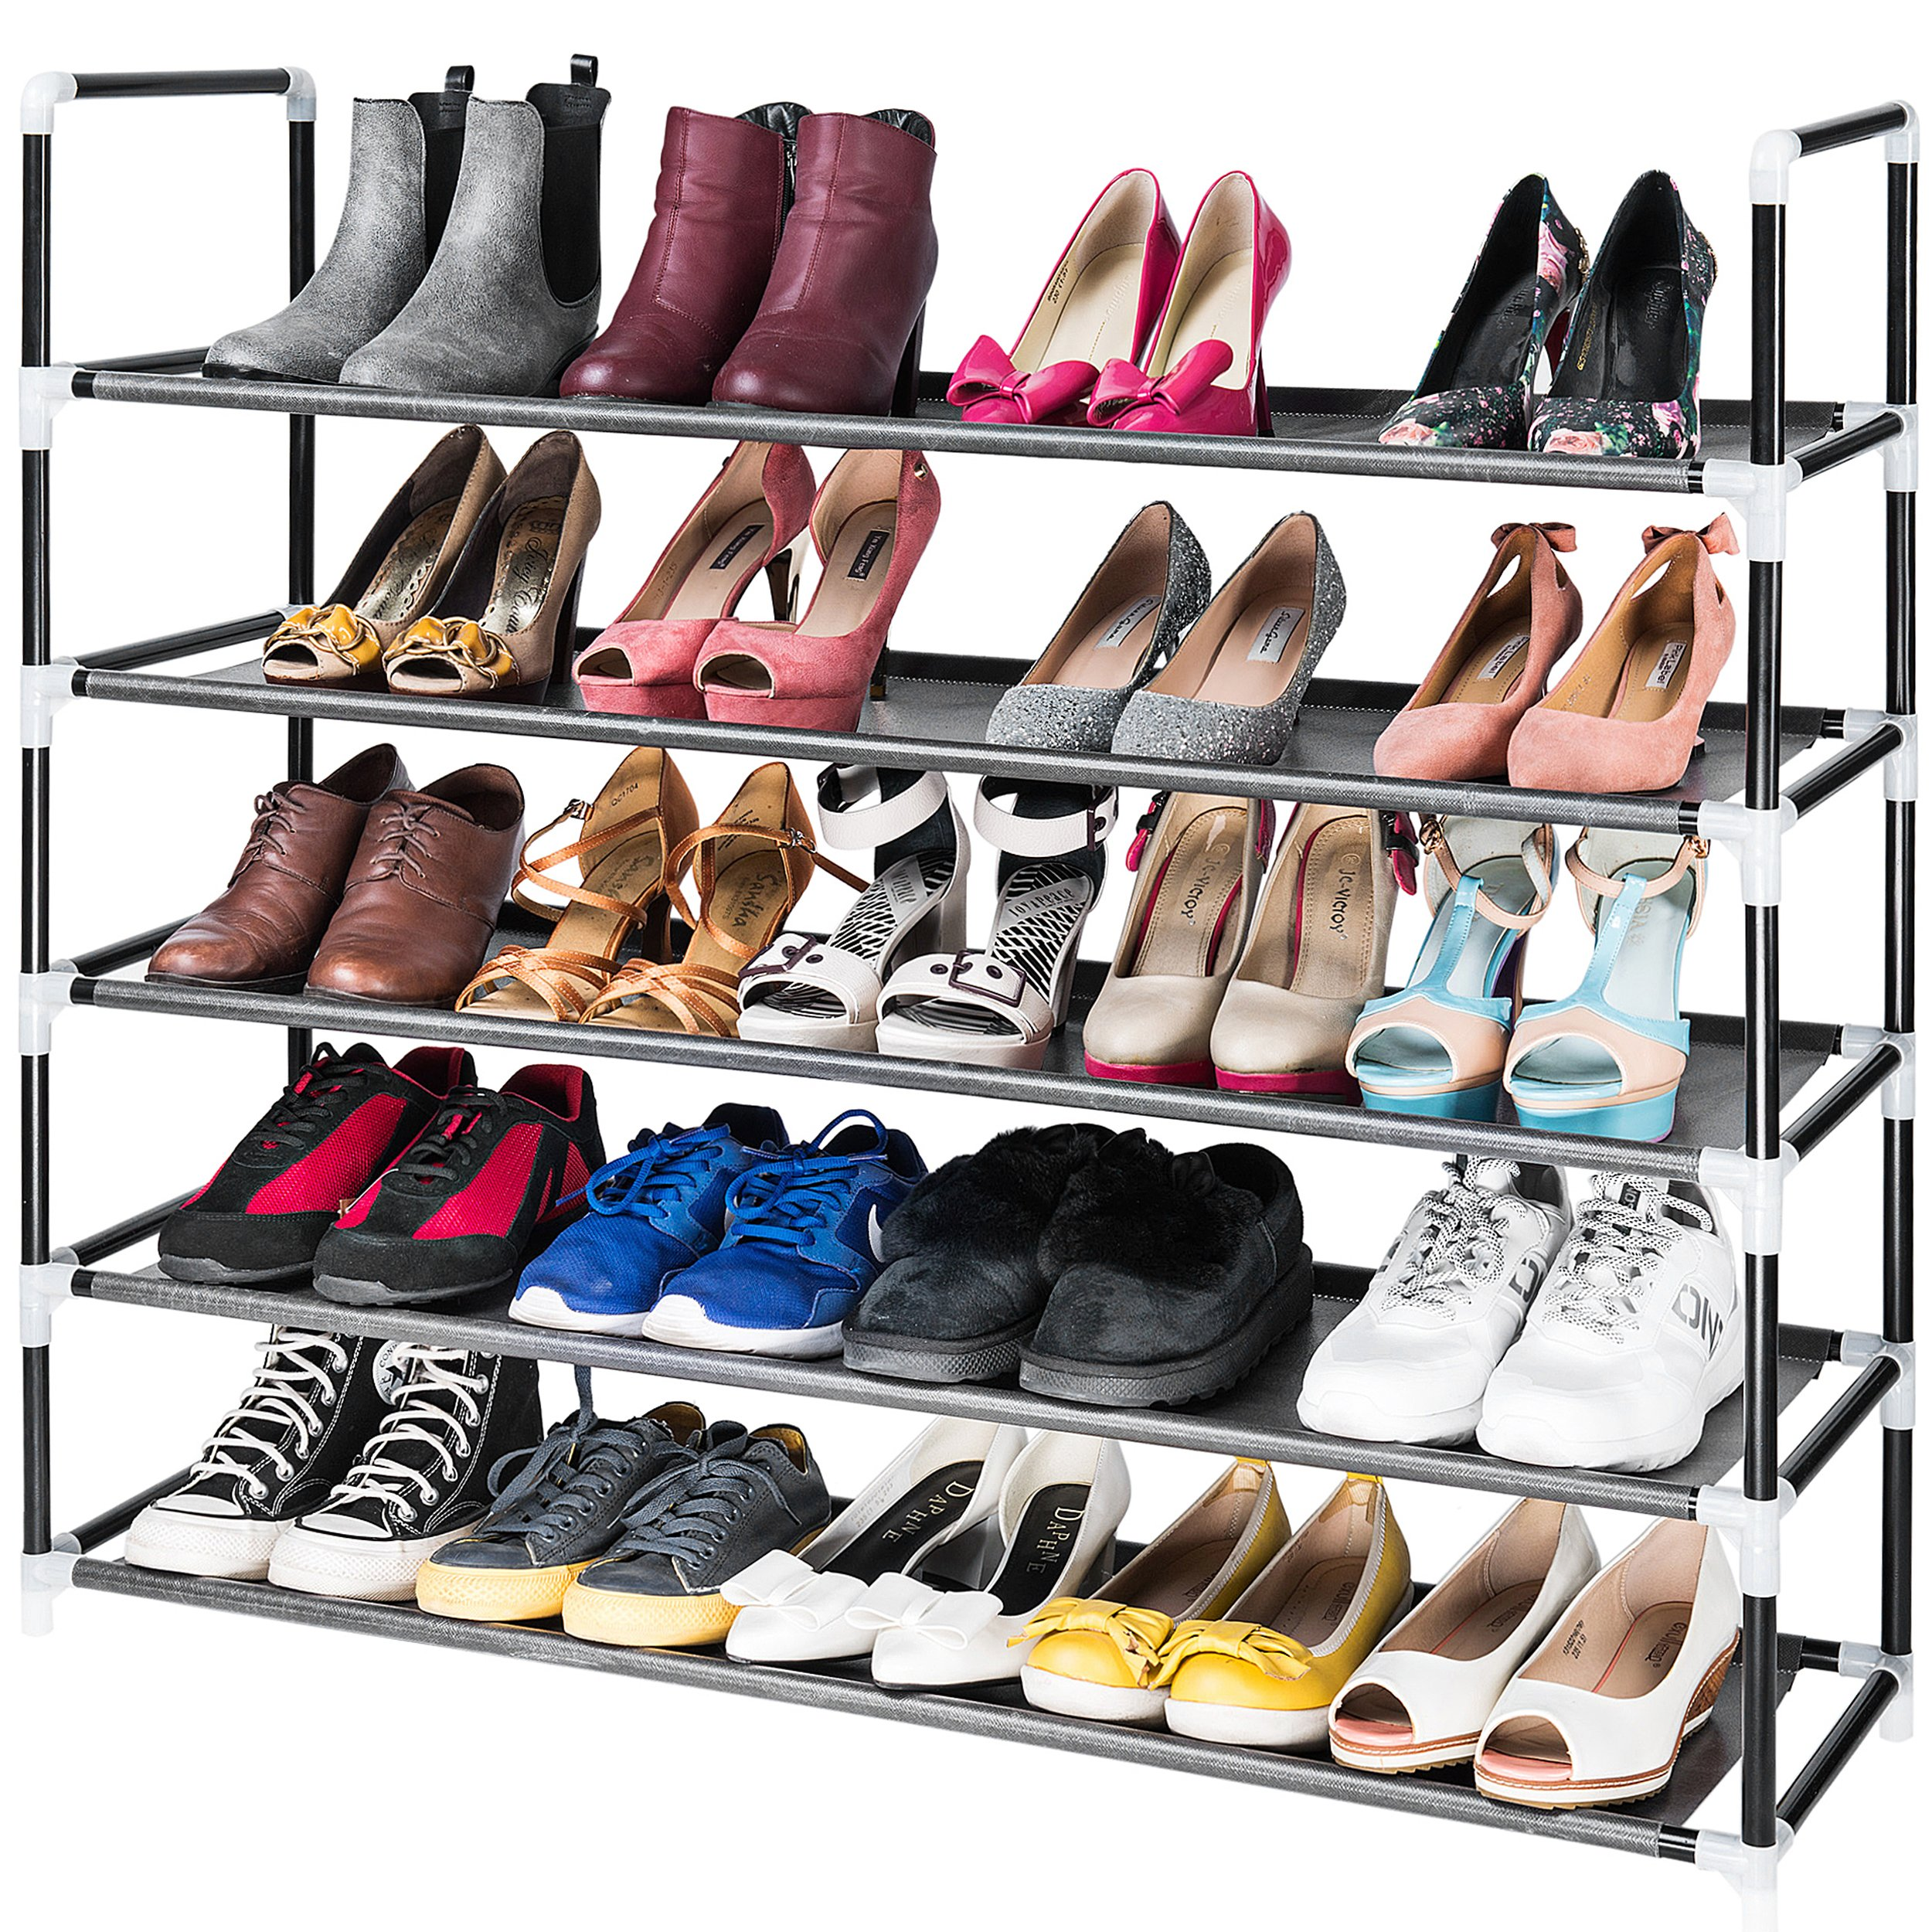 Elvoes 5 Tiers Dustproof Shoe Rack Storage Iron Shoe Shelves Simple Multi-layer Assembly Shoe Organizer-black